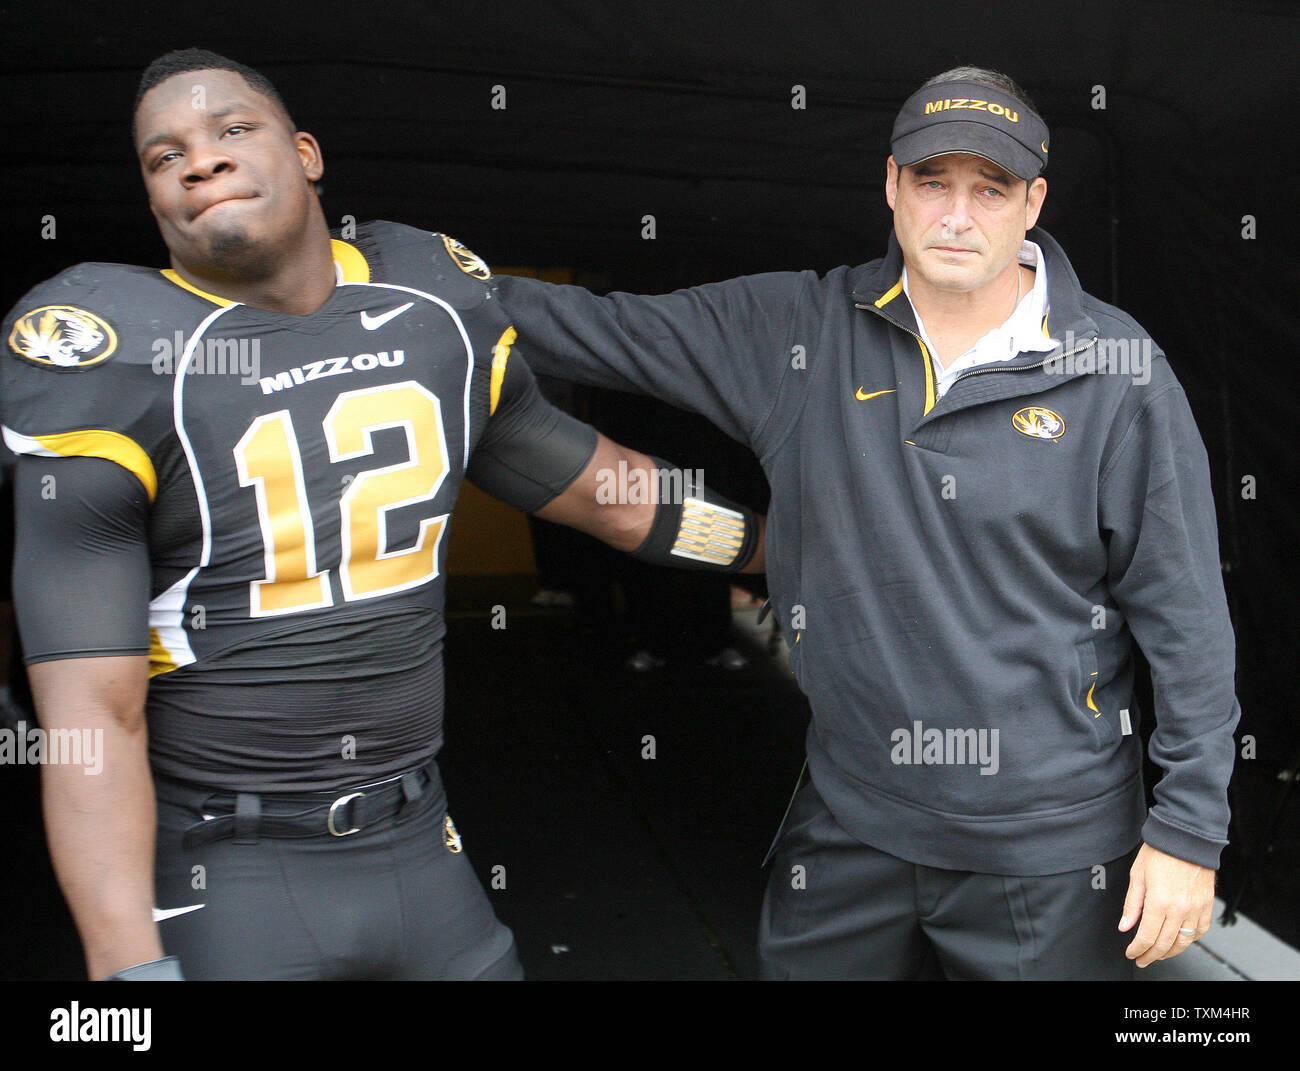 A tearful Missouri Tigers head football coach Gary Pinkel gives senior standout Sean Weatherspoon a hug as the two take the field for a game against the Iowa State Cyclones on Senior Day at Faurot Field in Columbia, Missouri on November 21, 2009. UPI/Bill Greenblatt - Stock Image